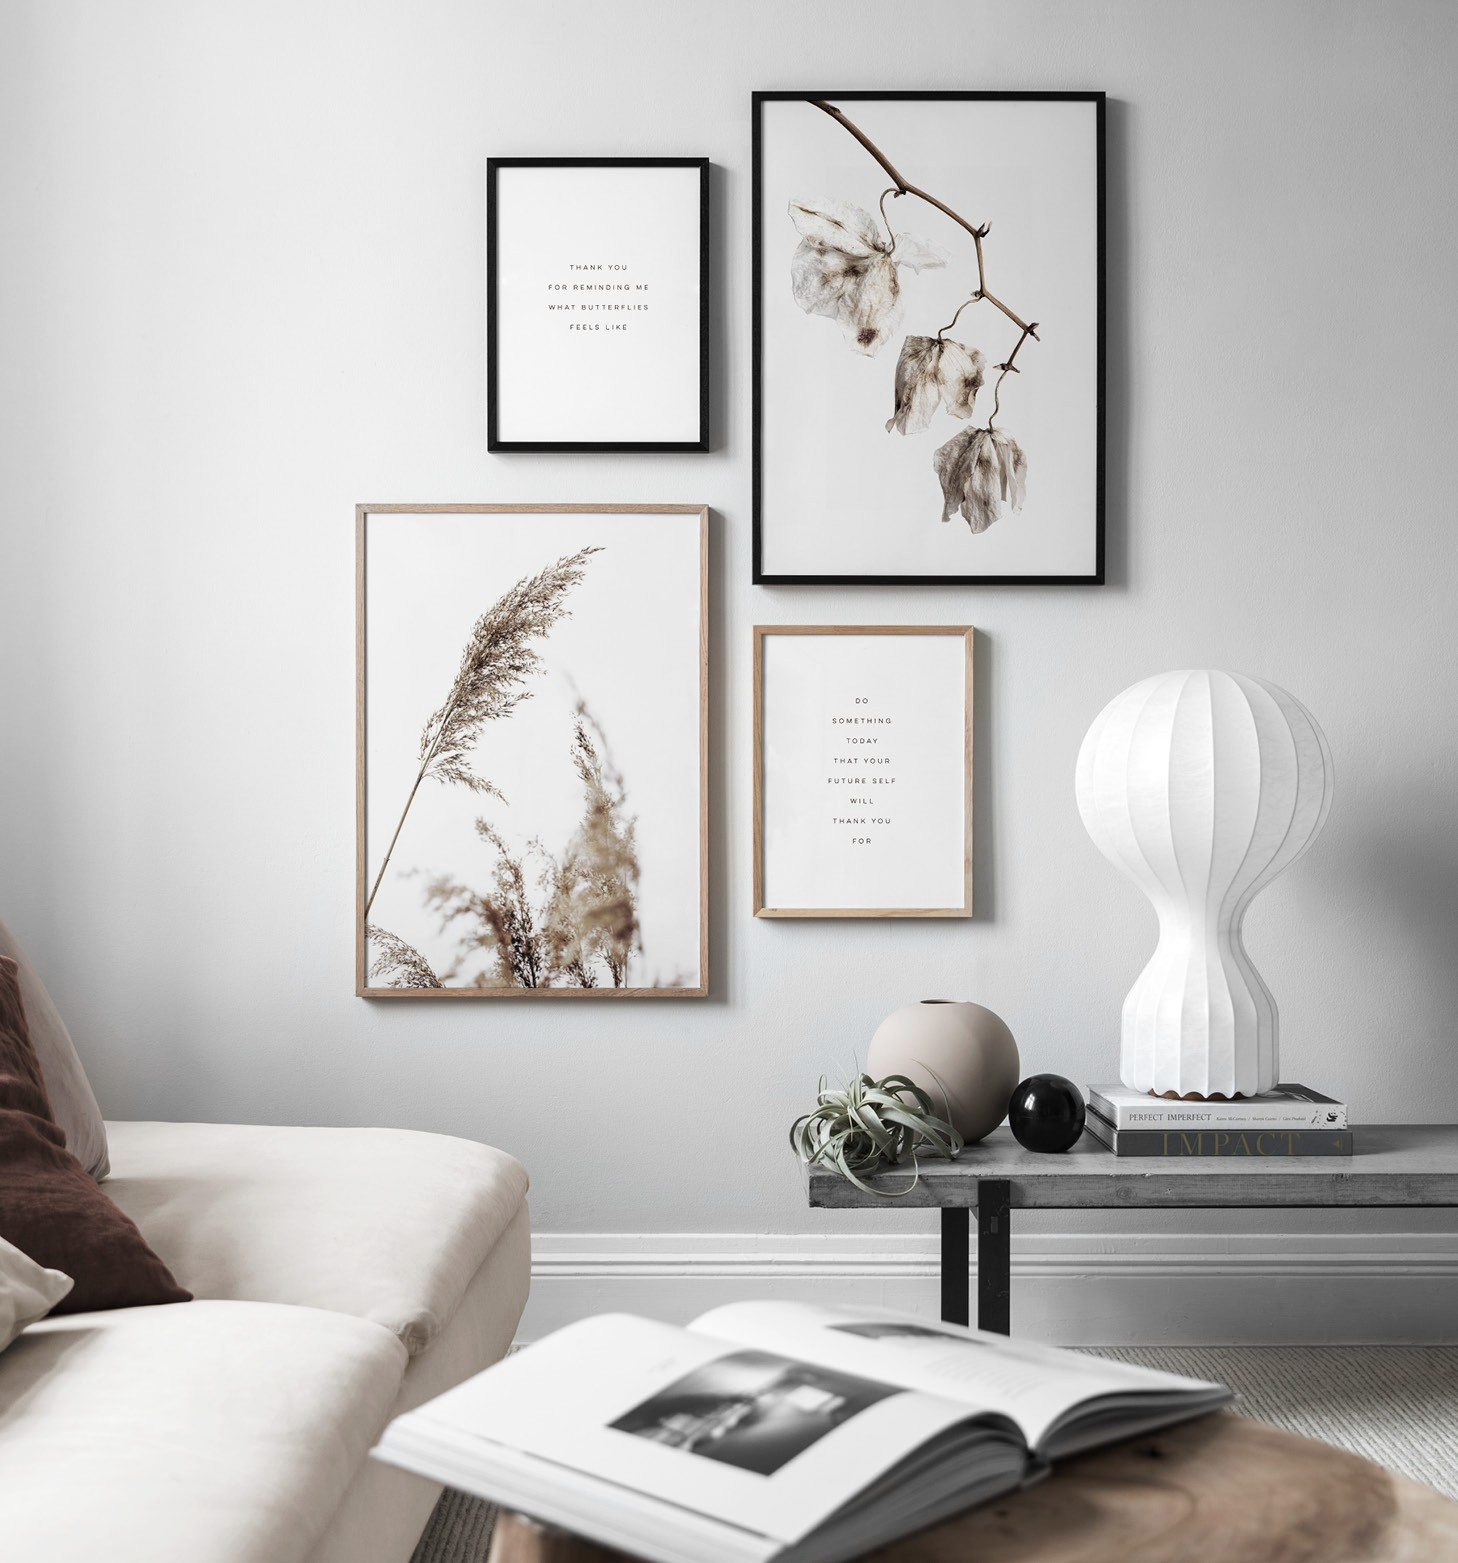 Gallery wall and picture collage inspiration